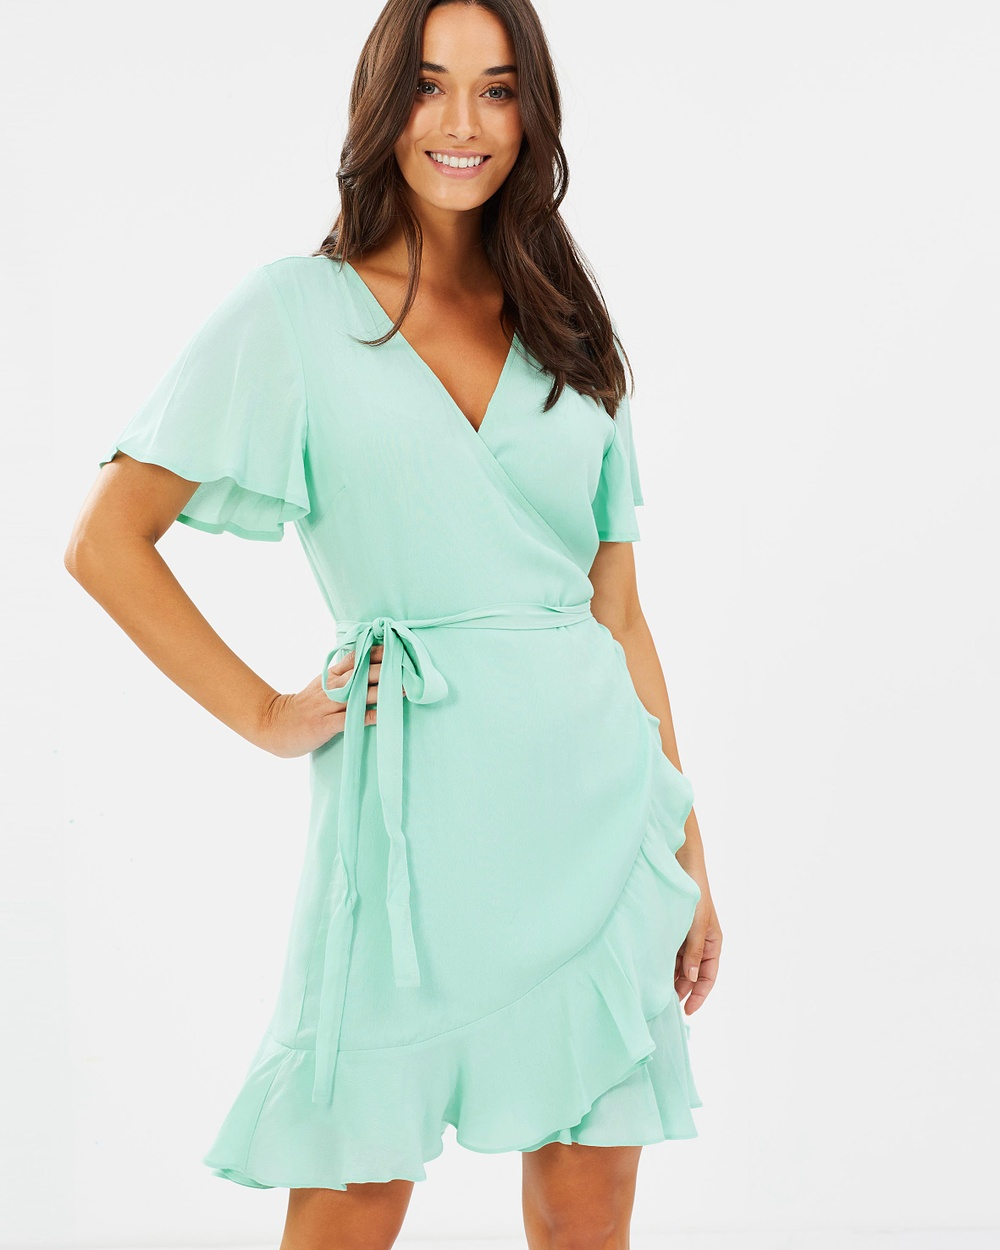 Fresh Soul Holiday Wrap Dress Dresses Mint Holiday Wrap Dress